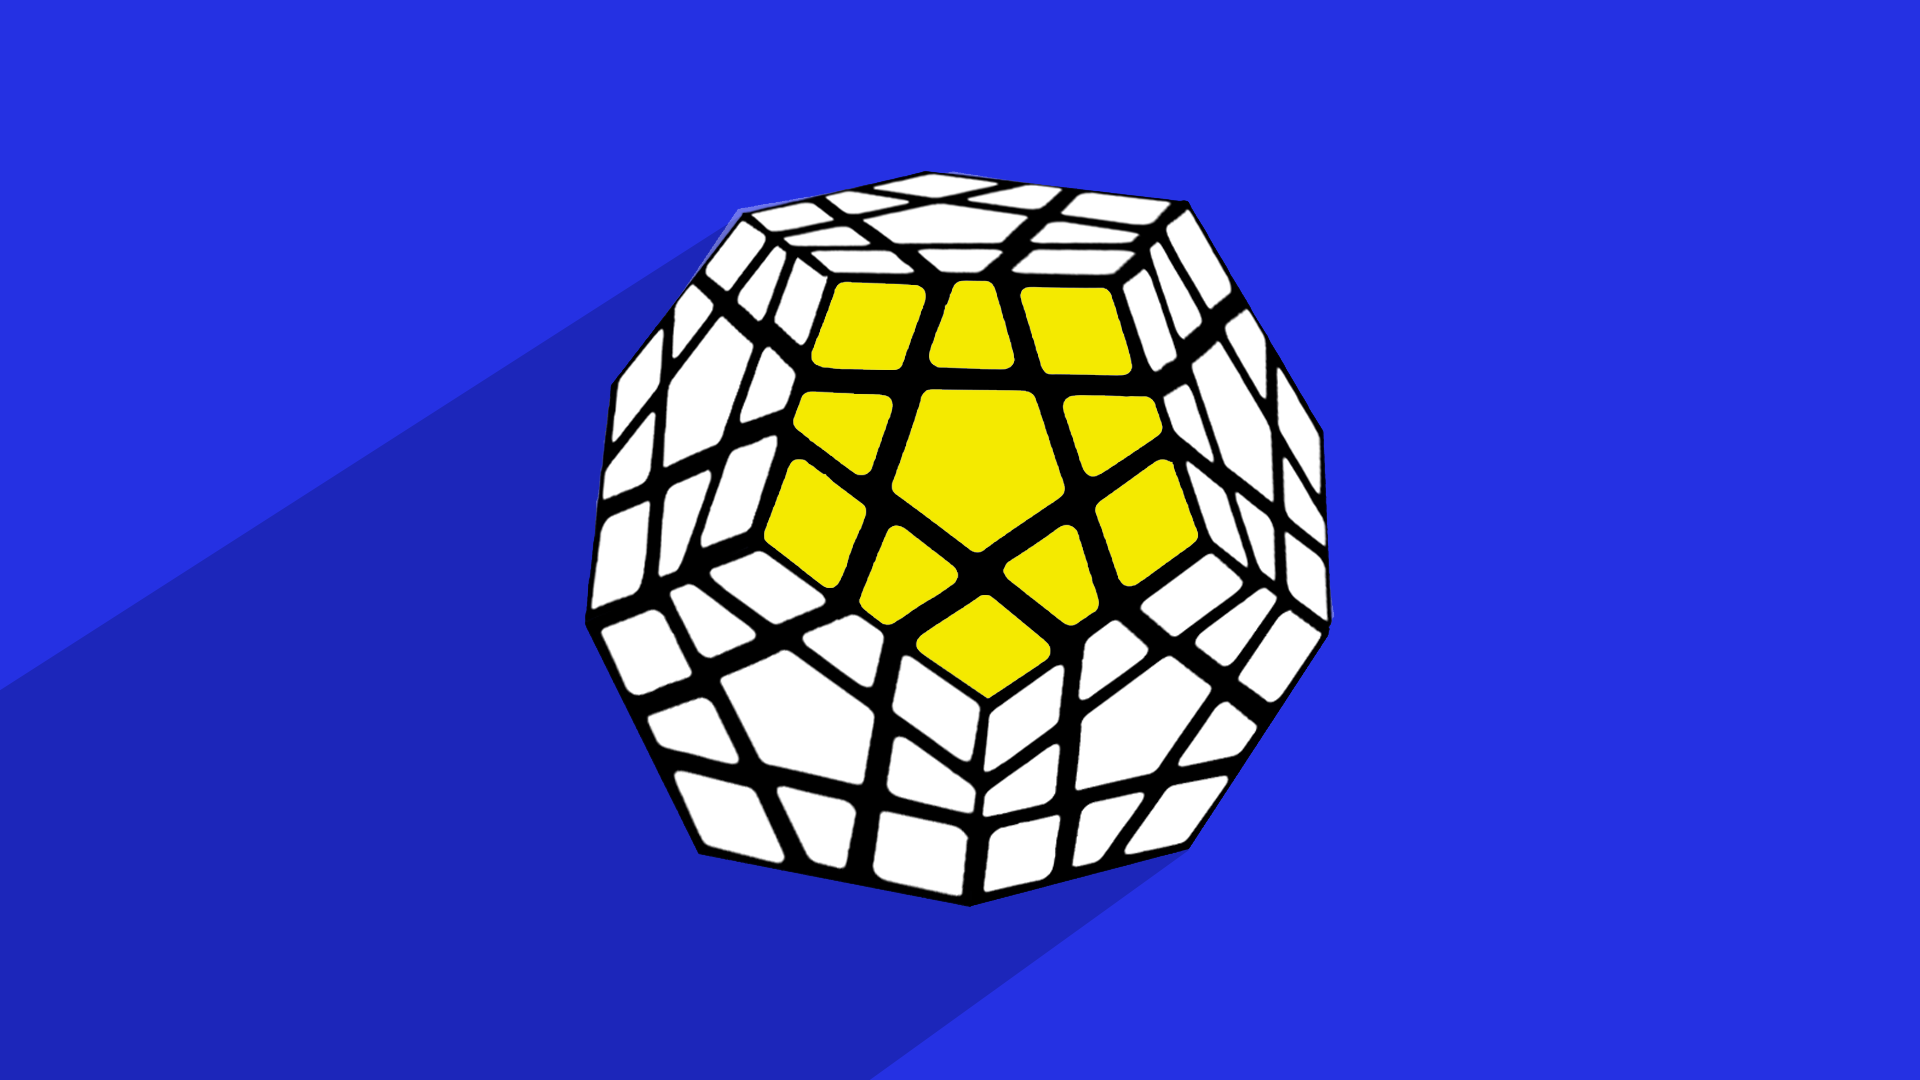 Intermediate Megaminx Techniques